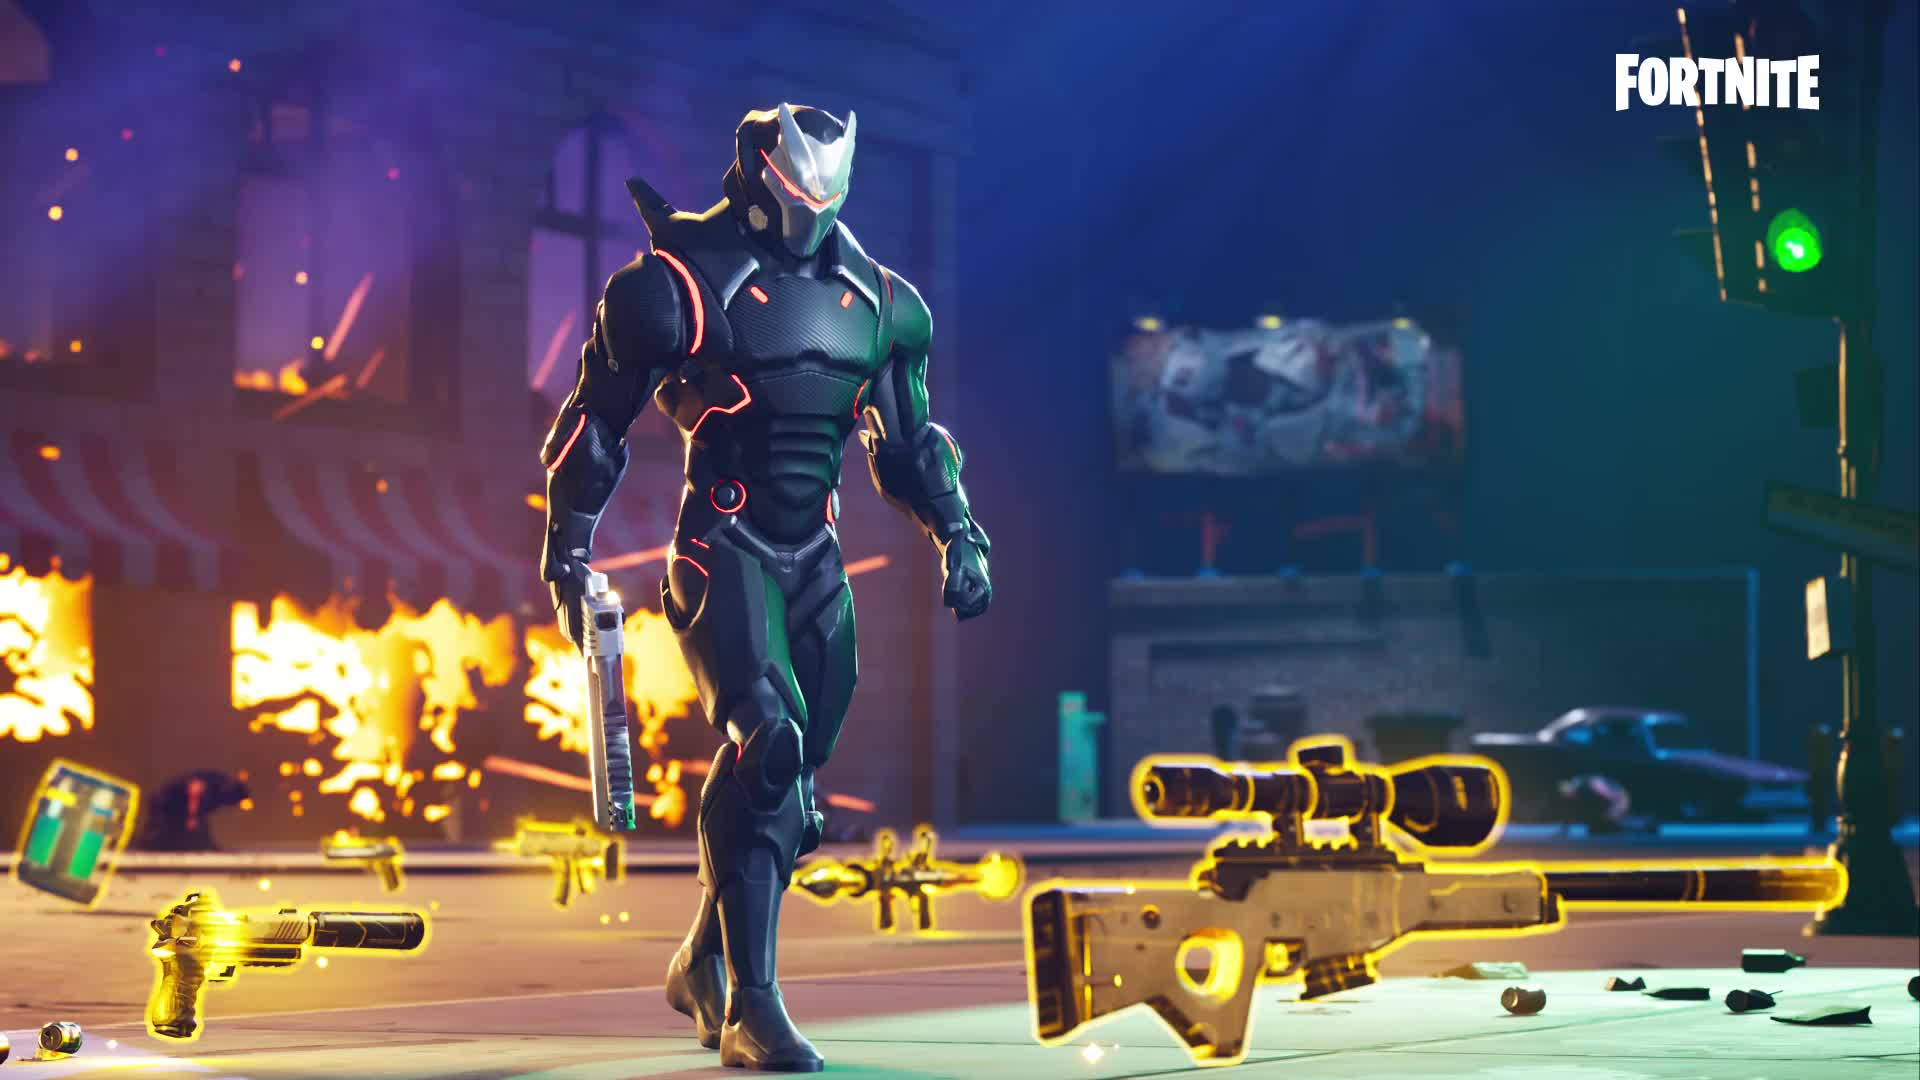 Fortnite Animated Wallpaper Posted By Zoey Tremblay